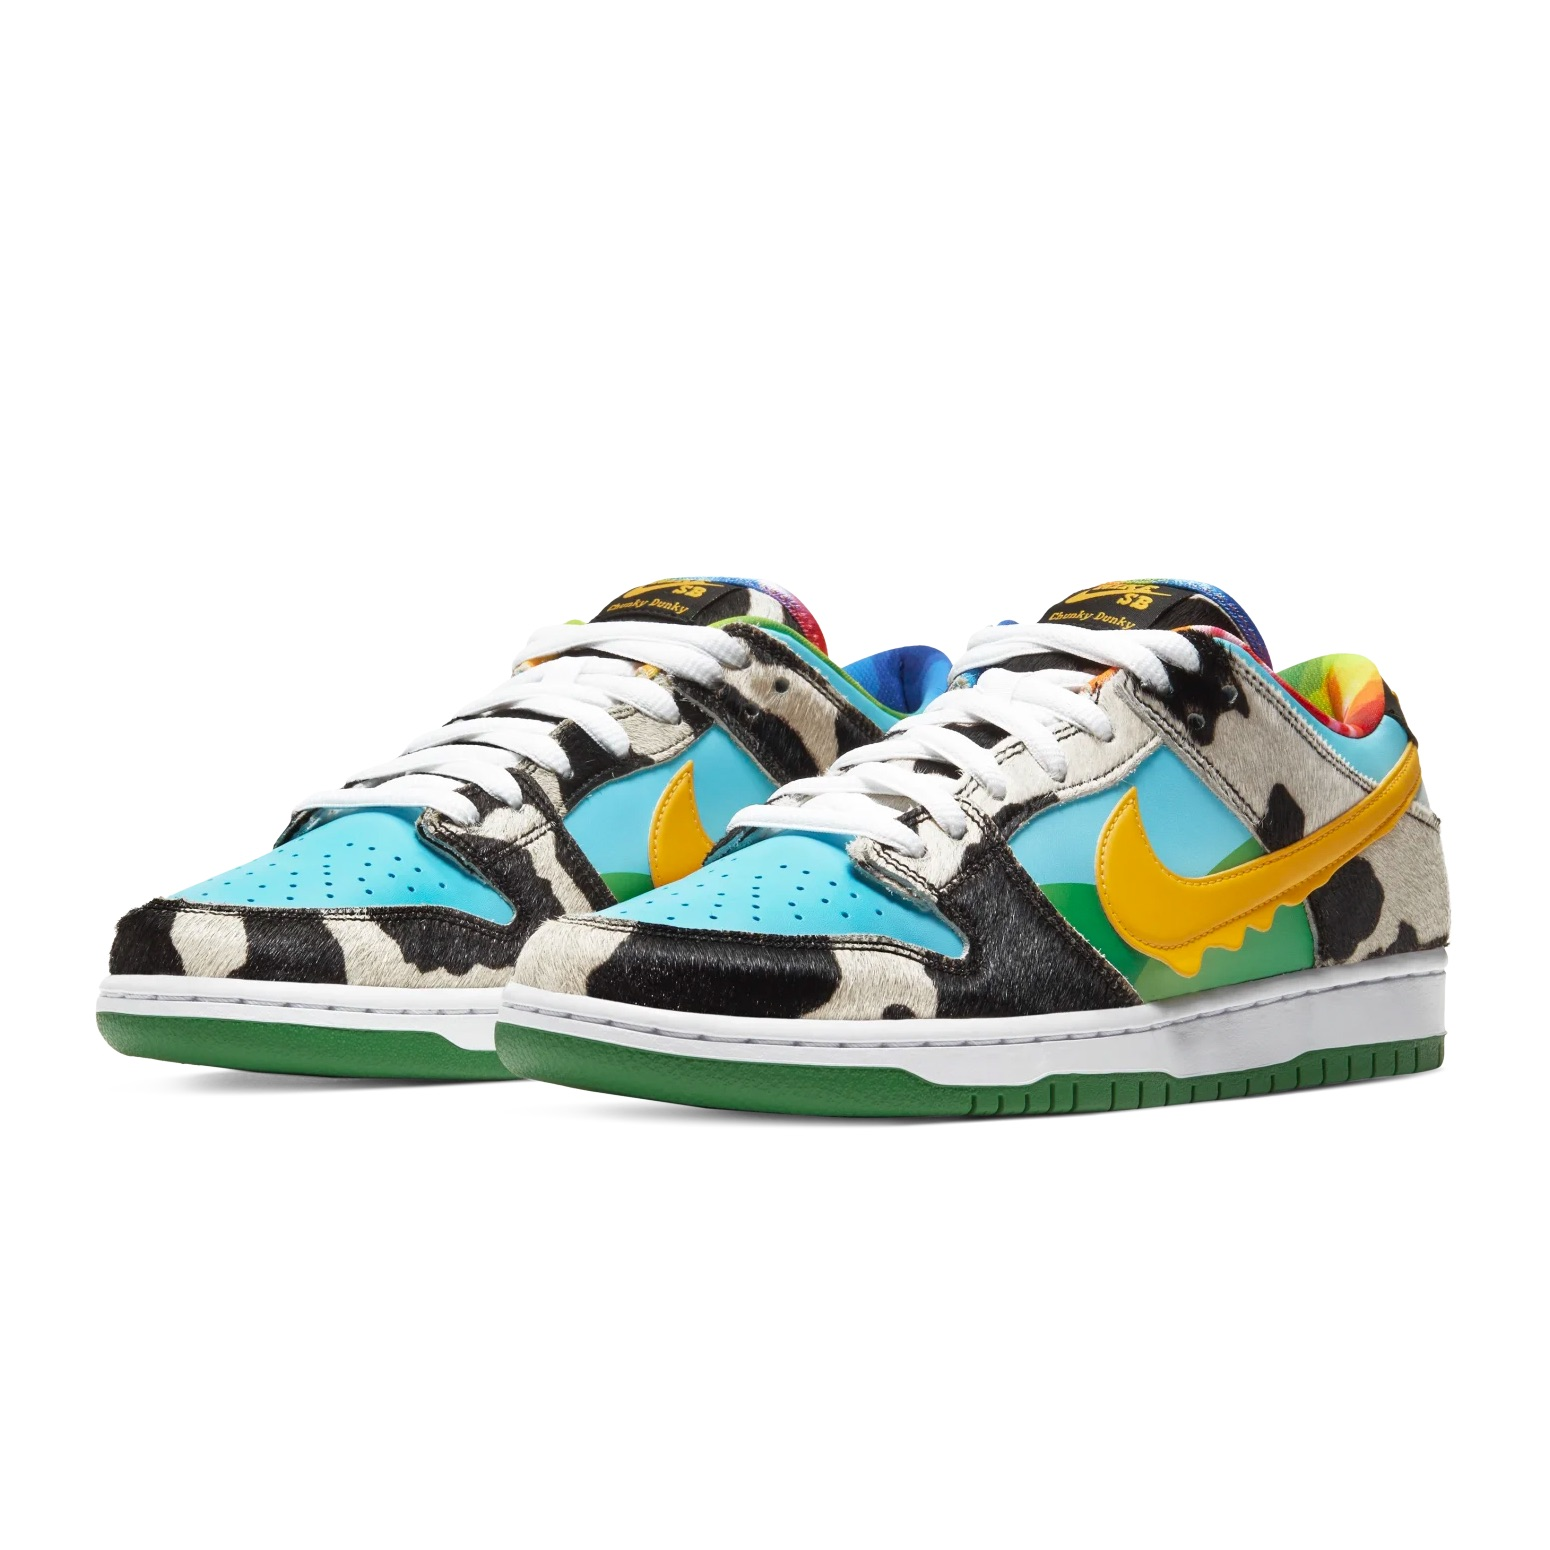 Release Date: Ben & Jerry's x Nike SB Dunk Low 'Chunky Dunky'